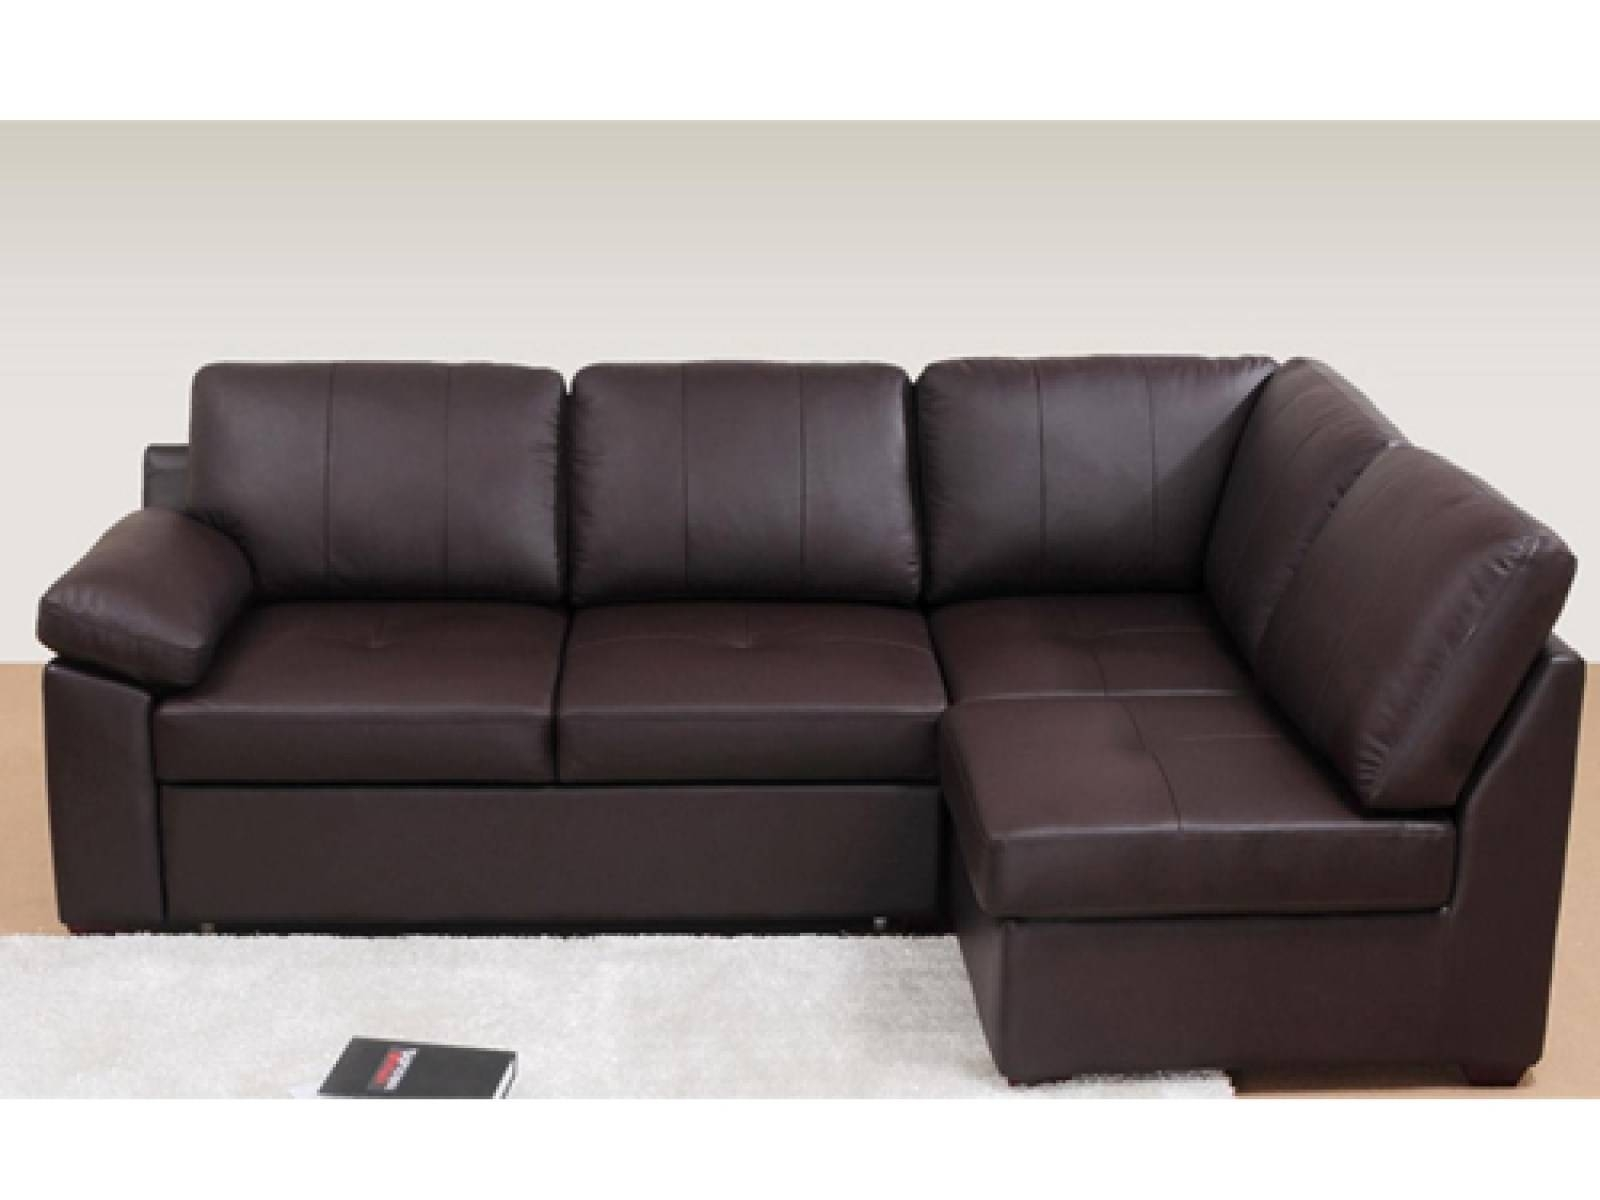 ▻ Sofa : 8 Leather Corner Sofa Bed Wonderful Leather Corner Sofa with Corner Sofa Bed Sale (Image 30 of 30)